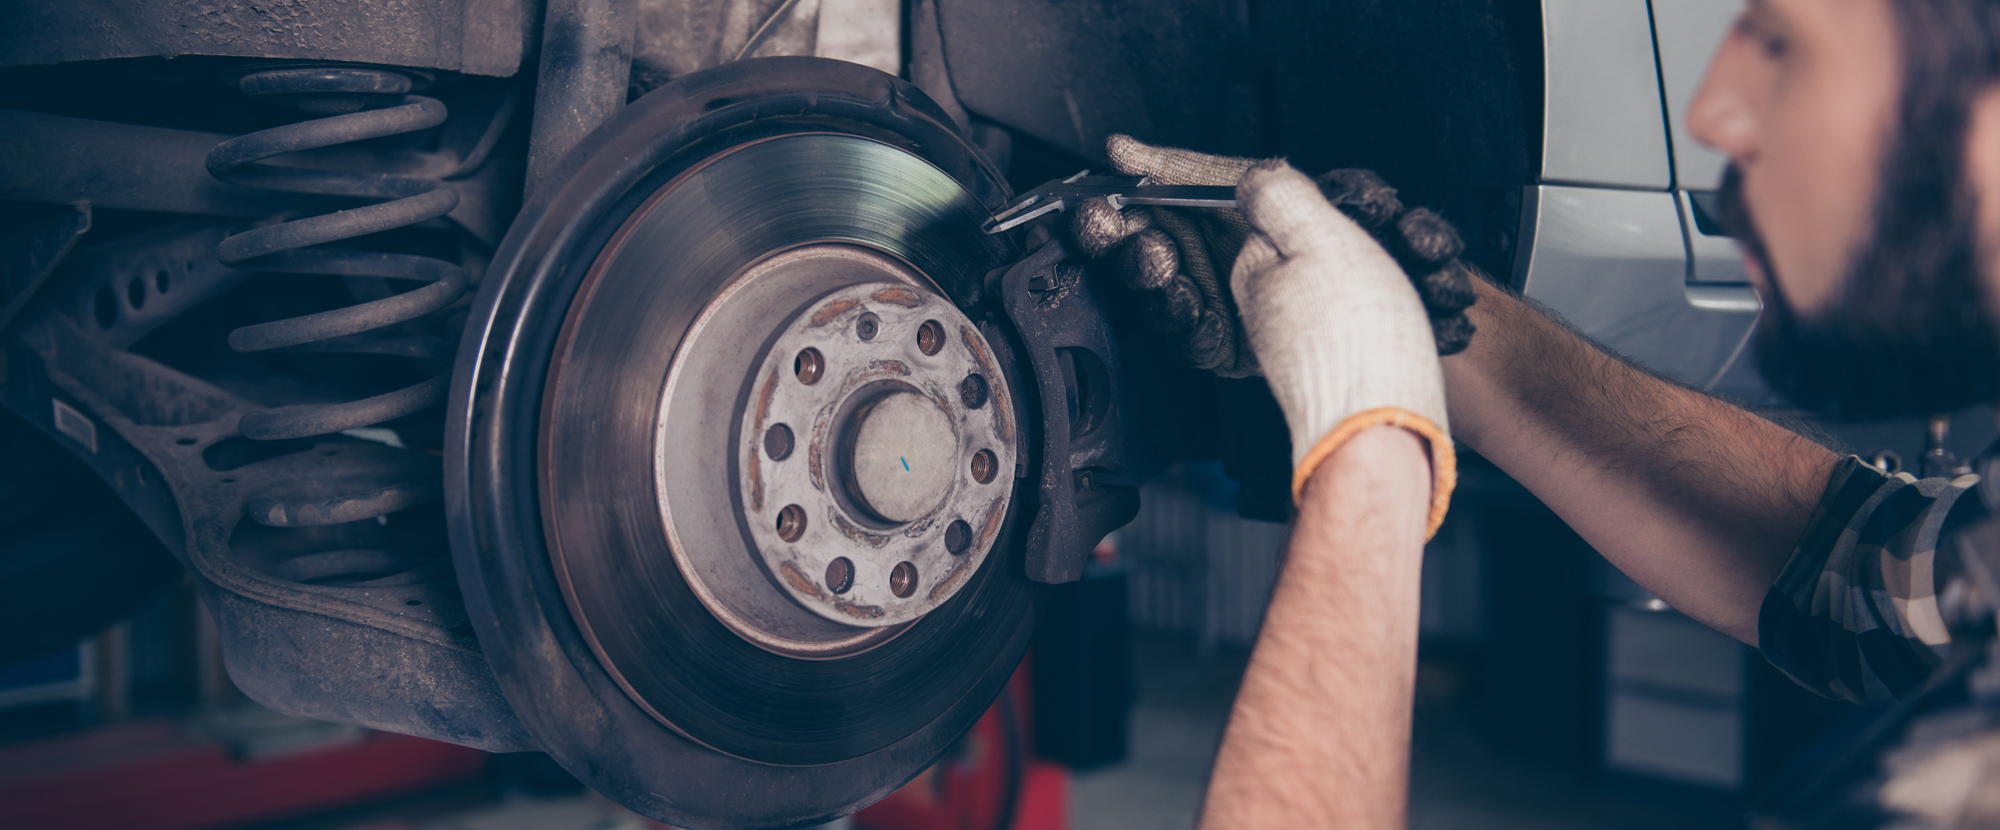 Heavy Duty Truck Repair Shop | Billings, MT | S&P Brake